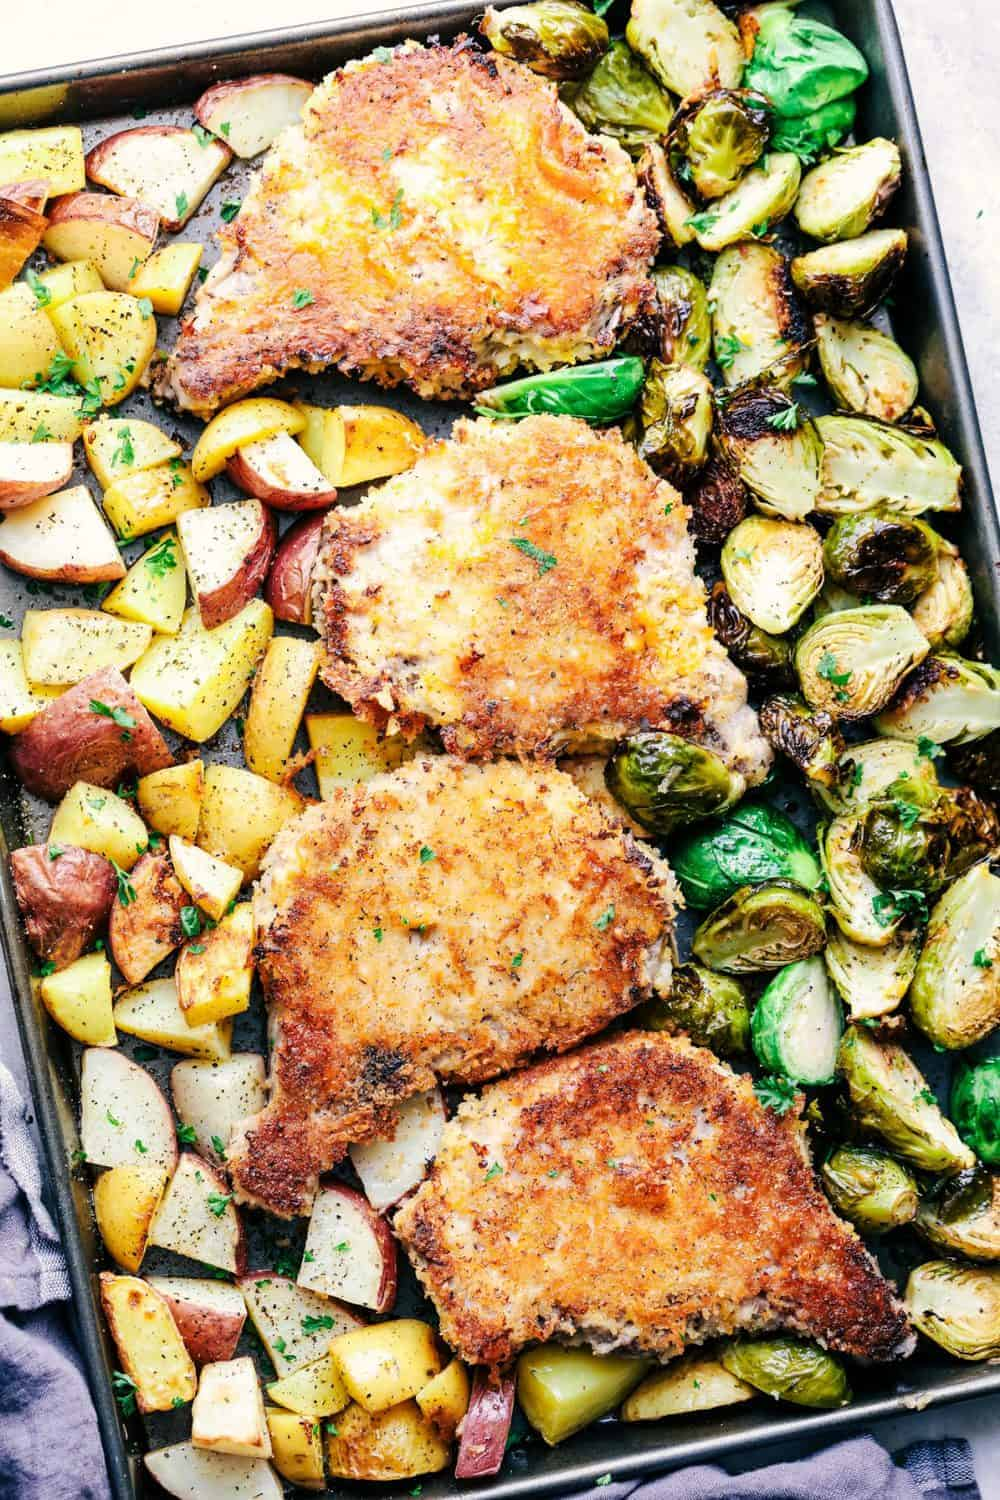 3 recipes how to cook in the oven tender pork with potatoes